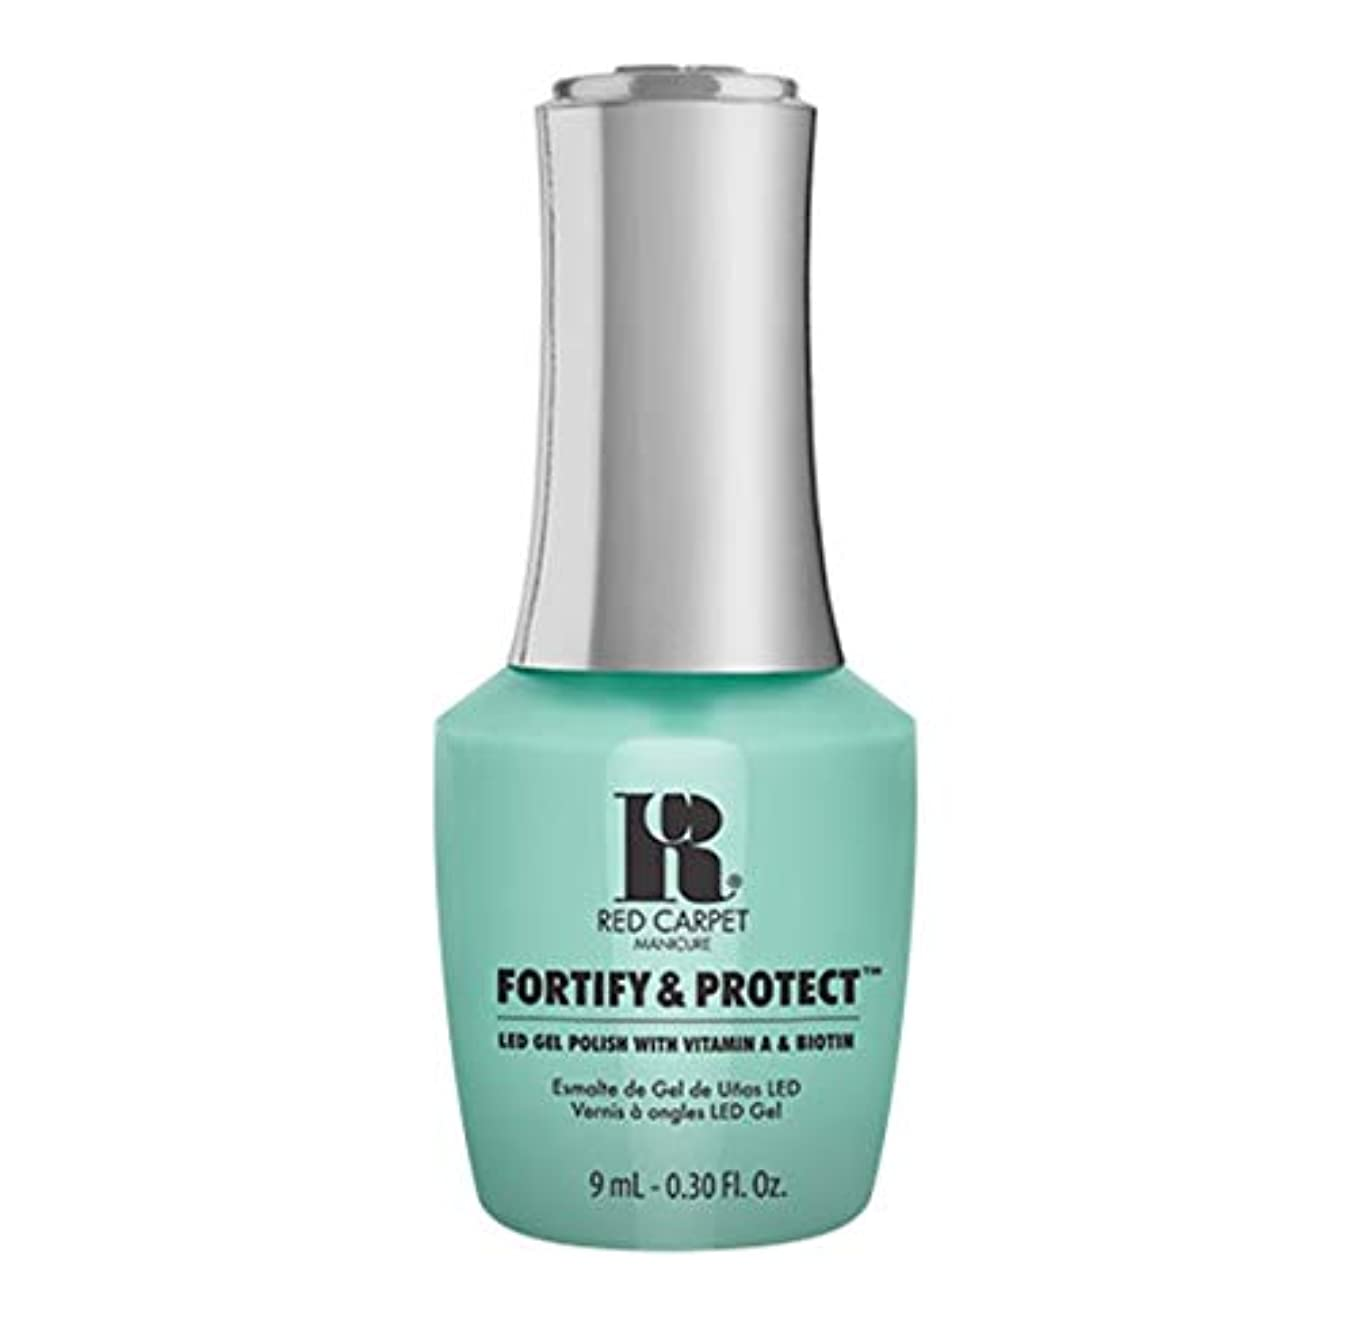 横インディカルーフRed Carpet Manicure - Fortify & Protect - Front And Center - 9ml / 0.30oz